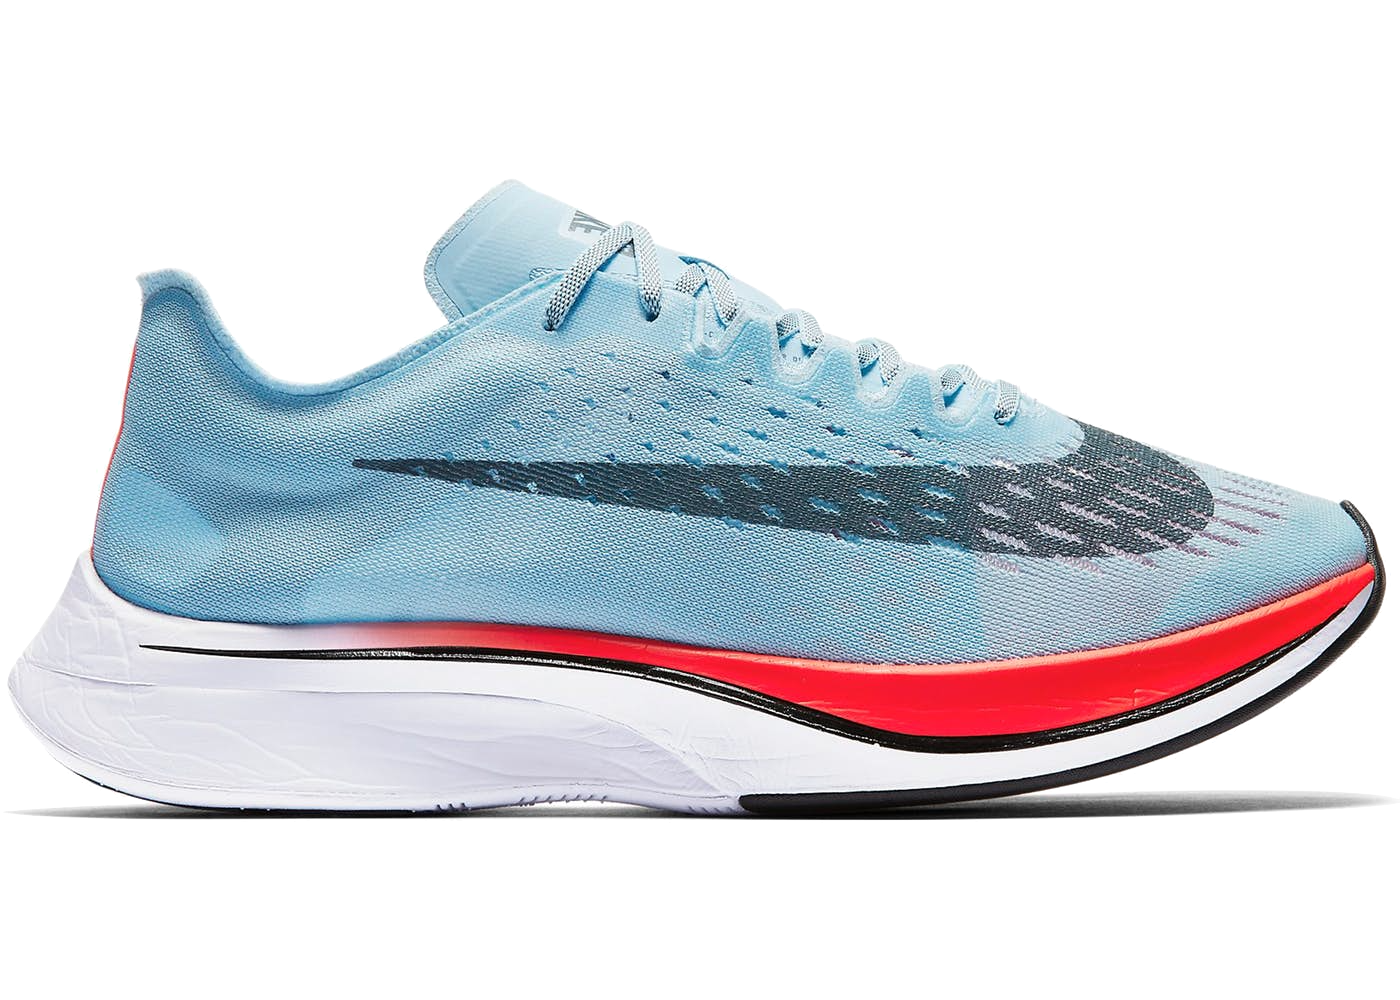 3328b45bff8d3 Nike Zoom Vaporfly 4% - Does it really make you 4% faster